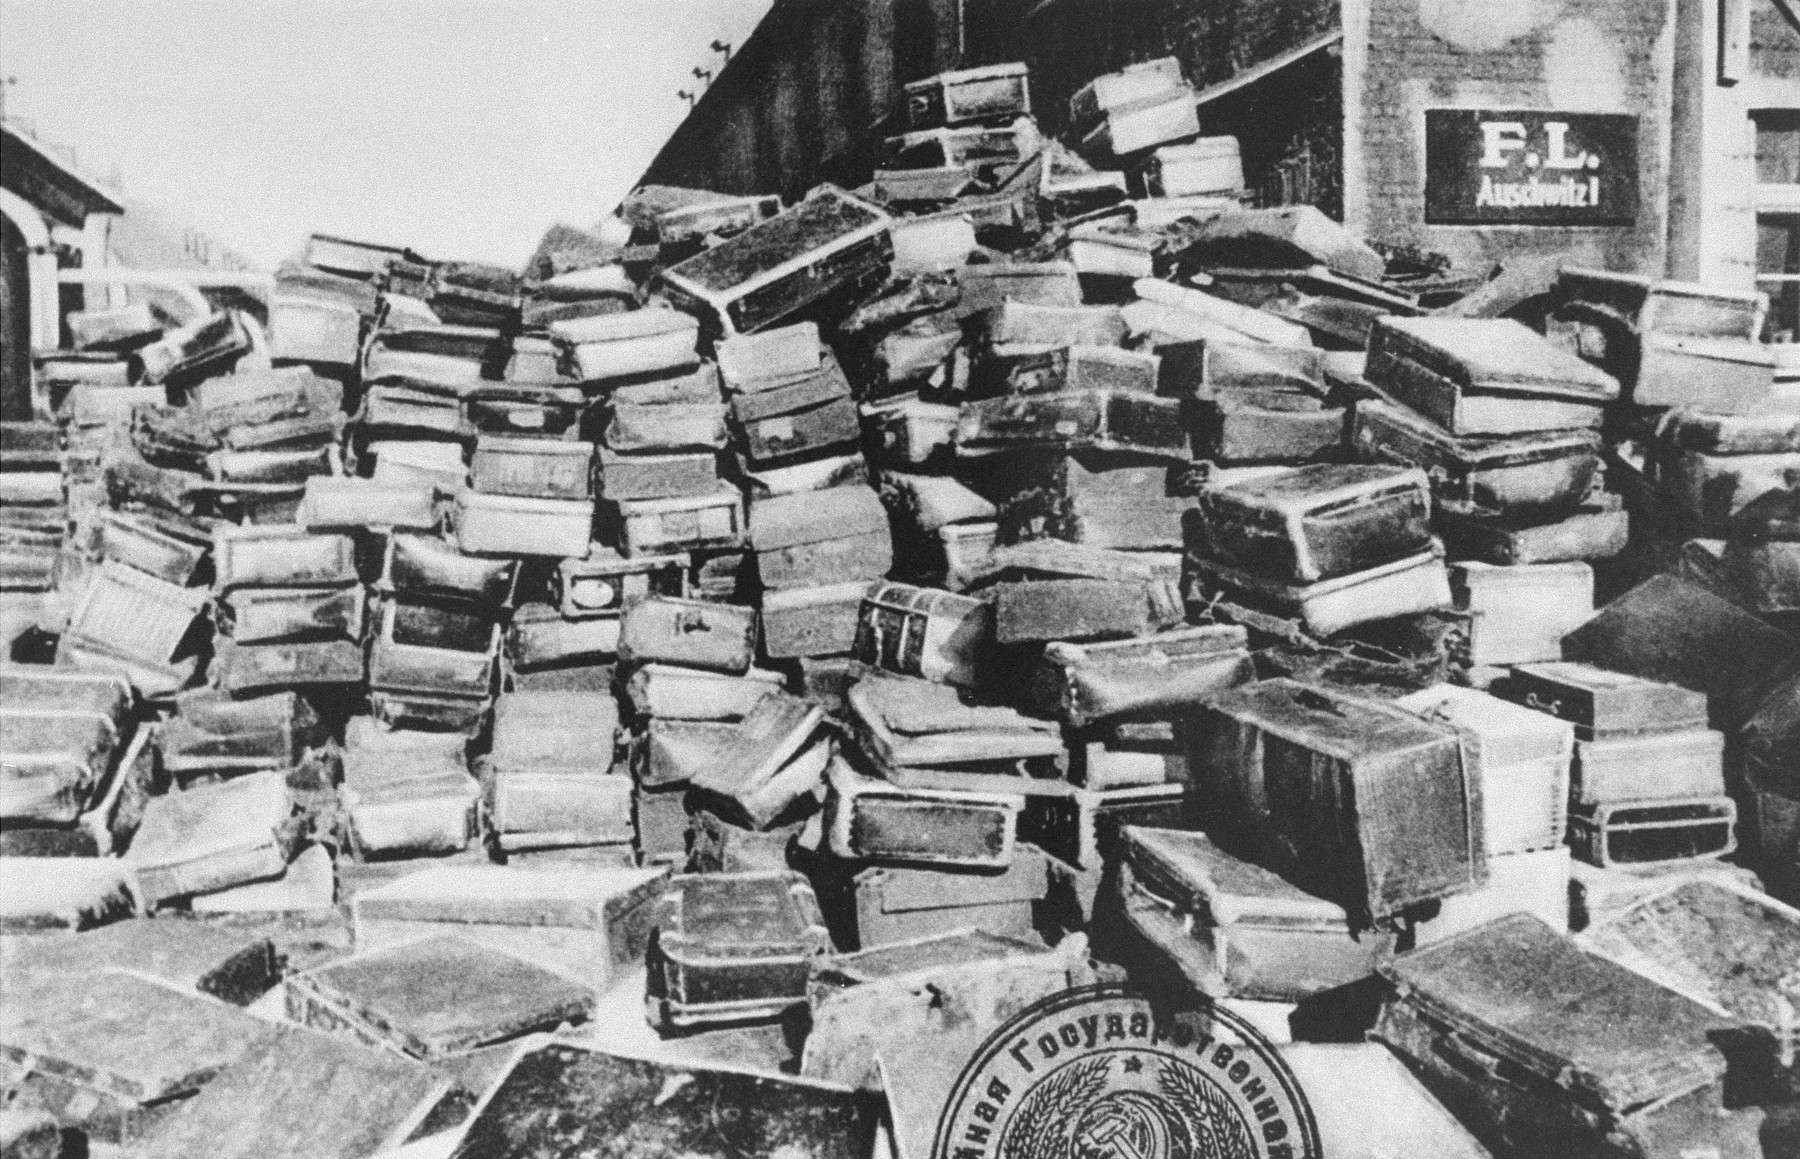 Suitcases of Auschwitz inmates (that were never shipped to Germany) found after liberation.